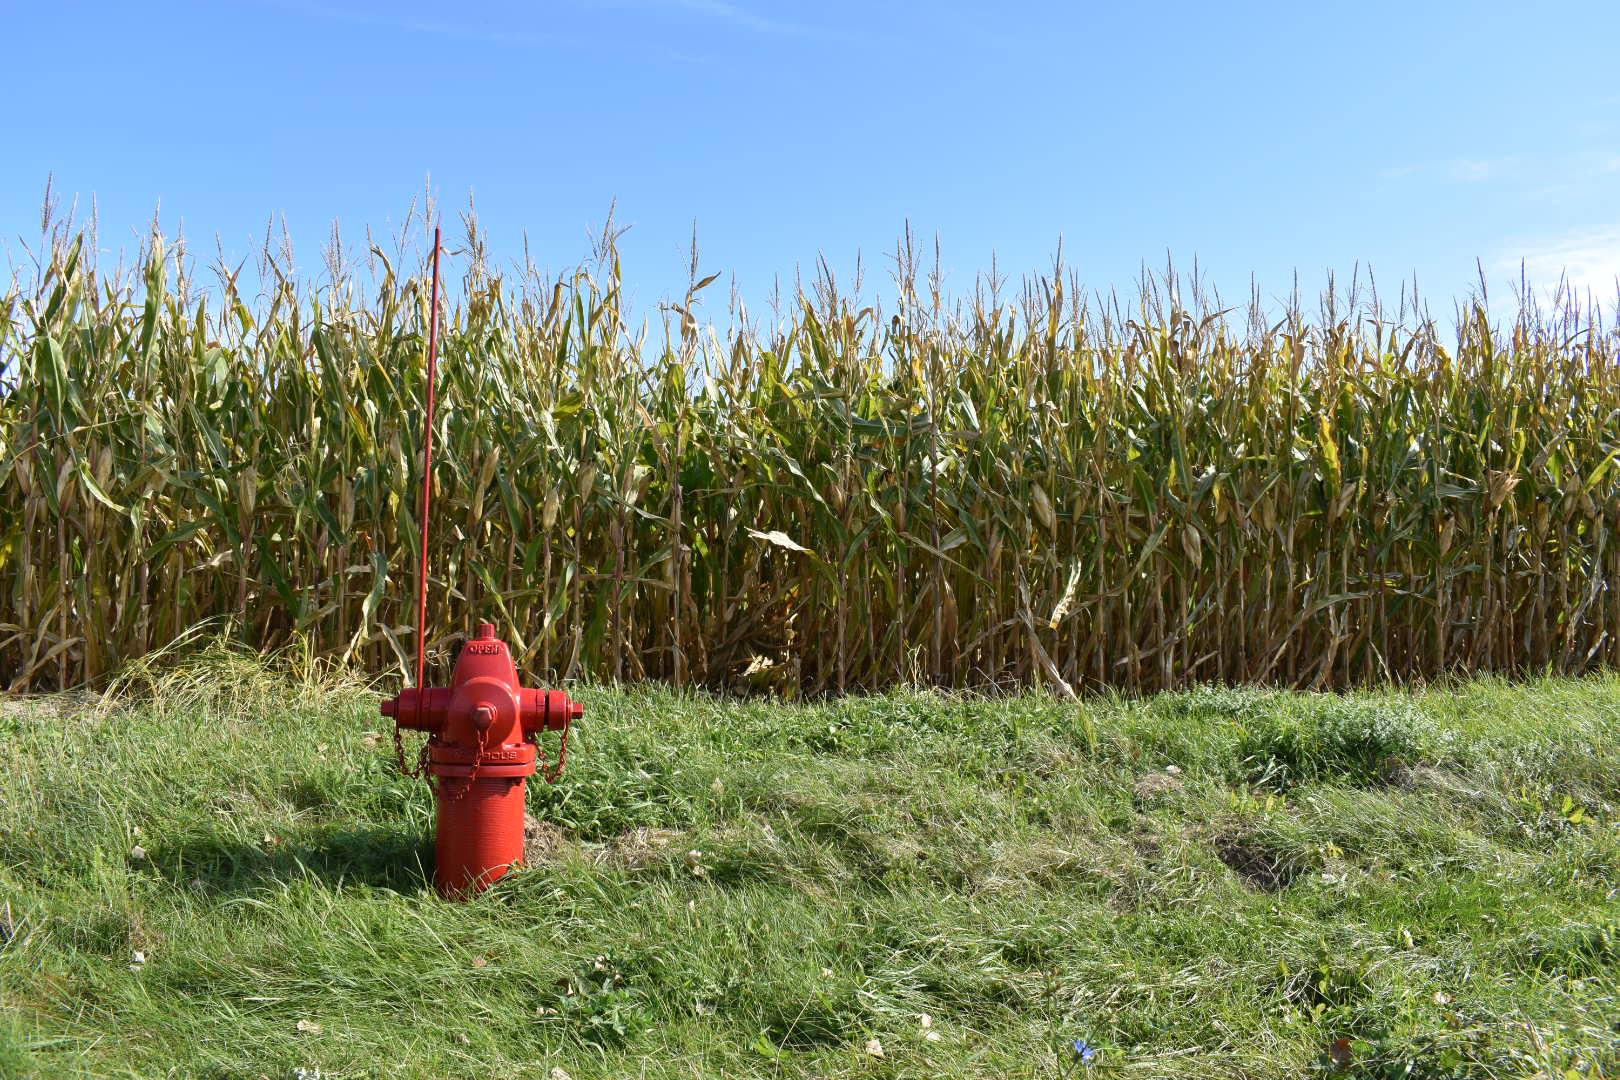 Fall 2019_Red fire hydrant